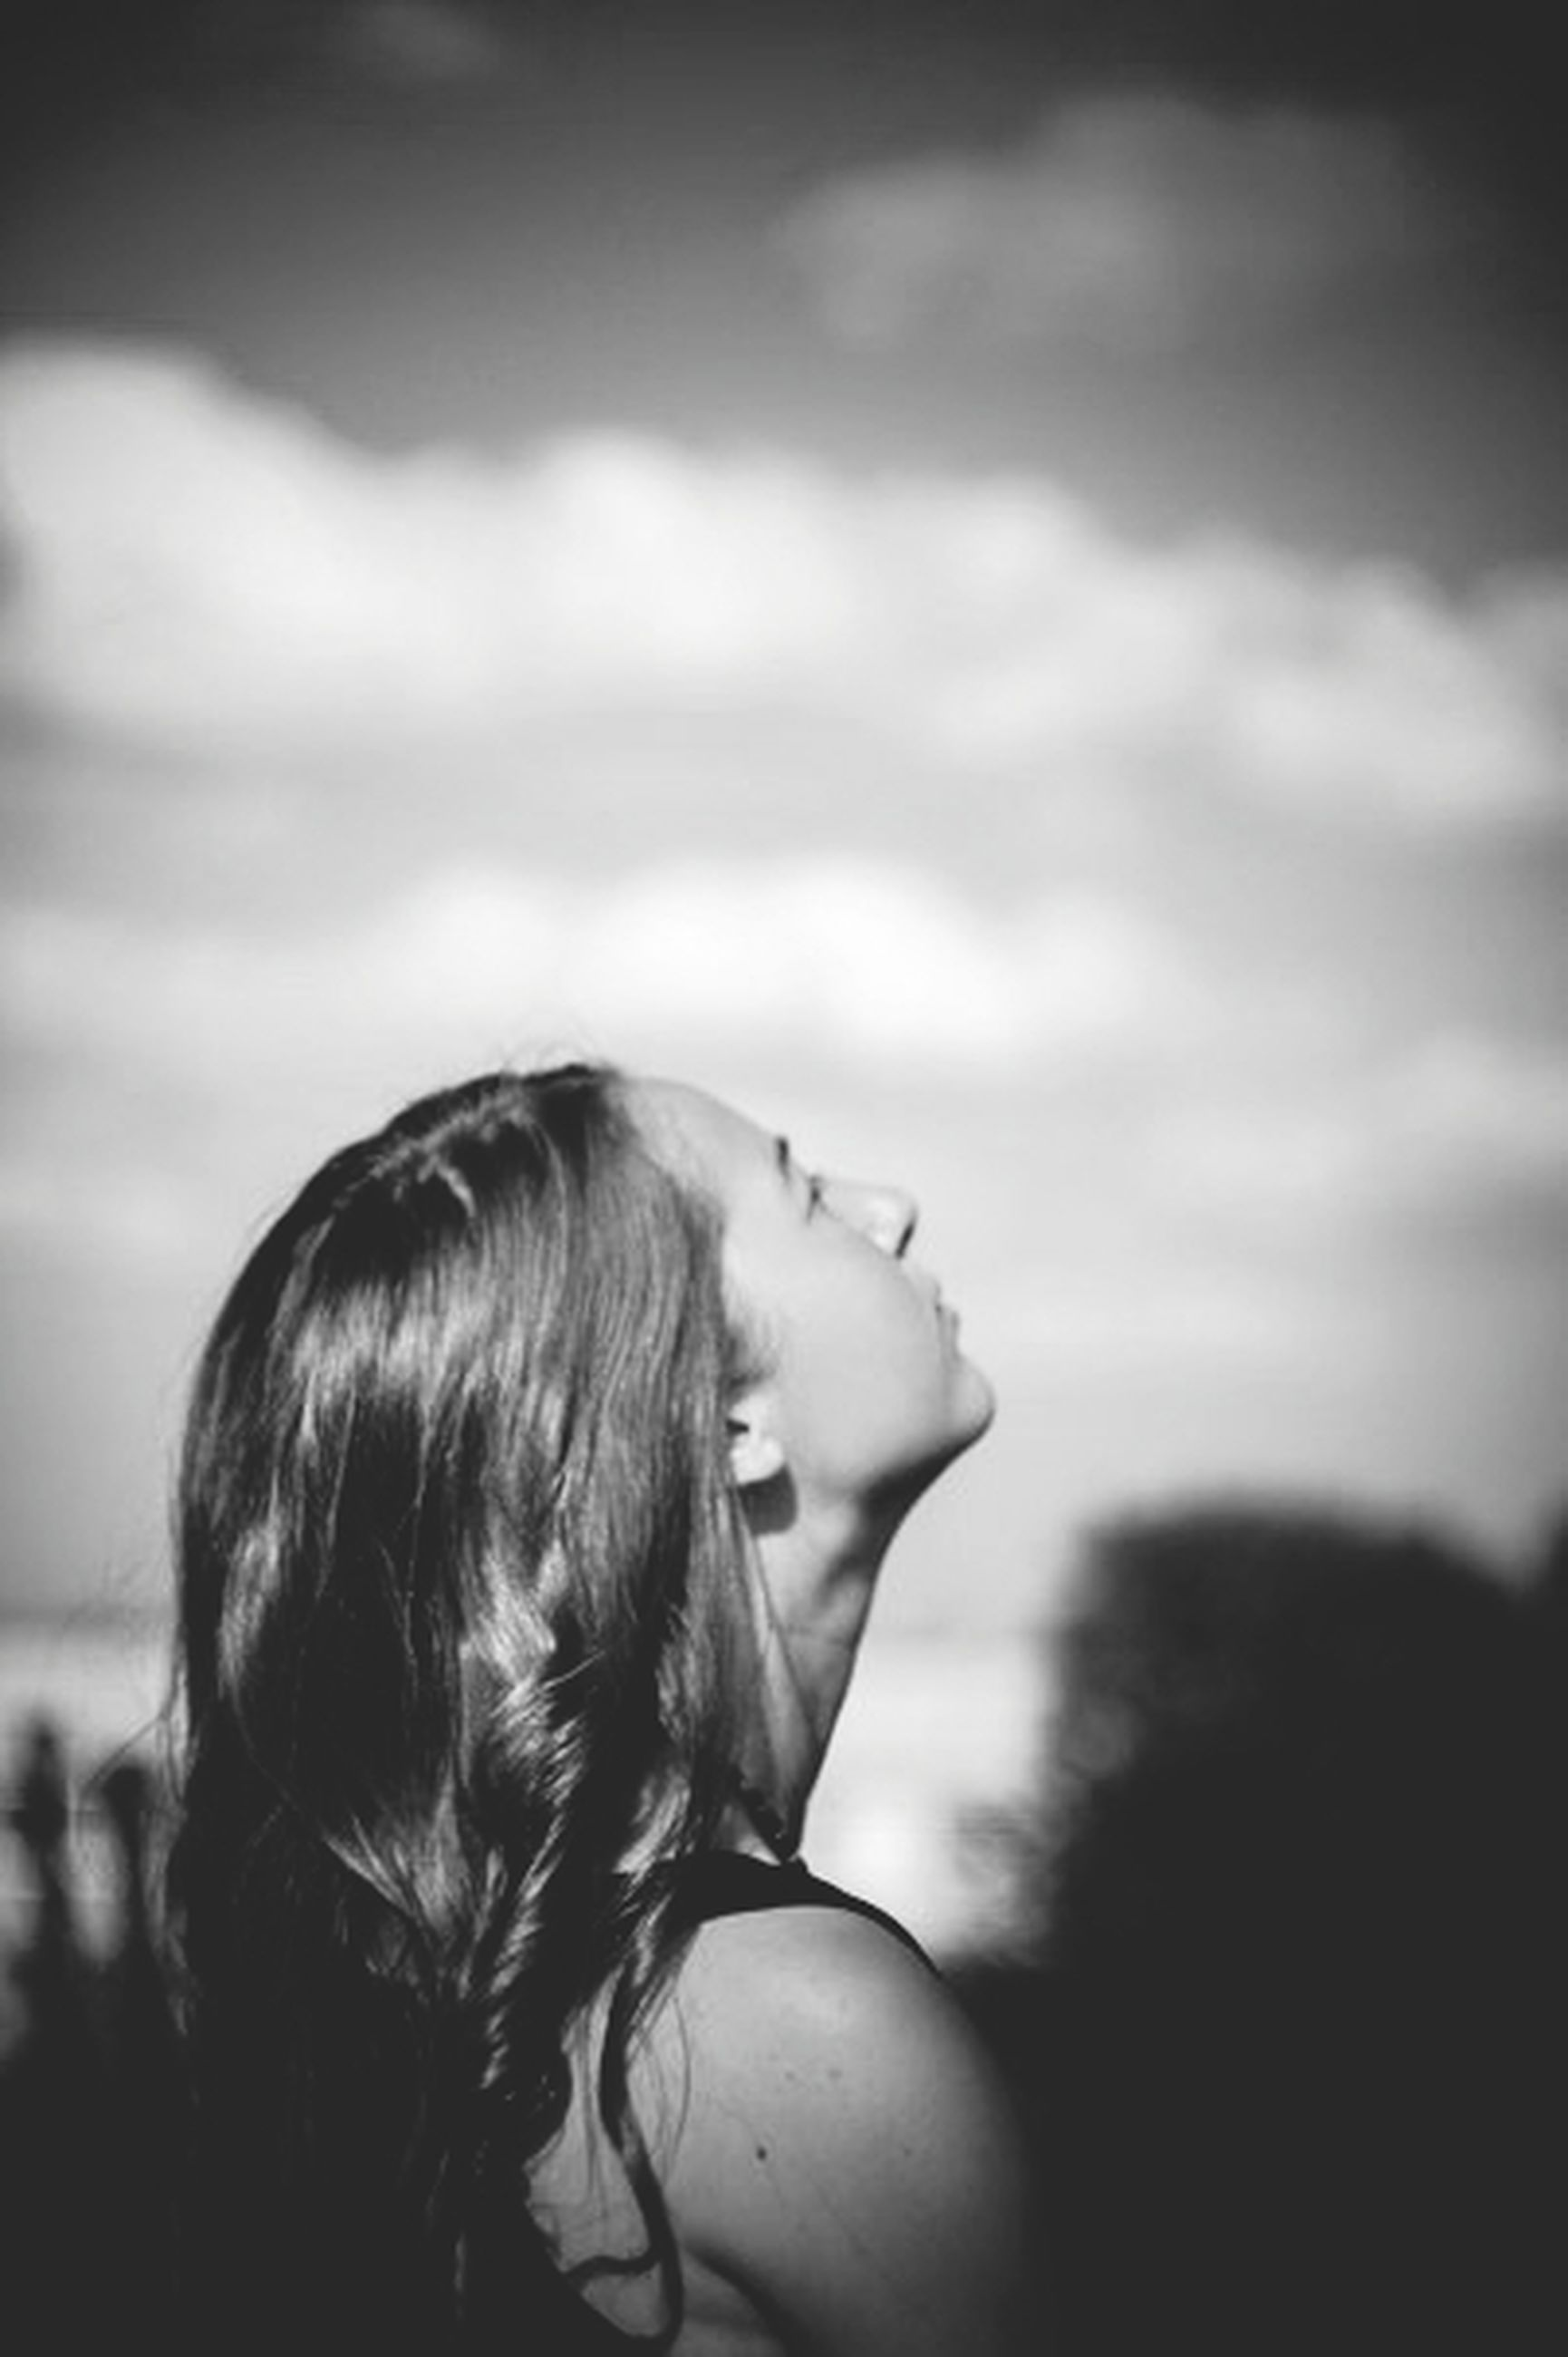 lifestyles, leisure activity, person, focus on foreground, childhood, headshot, young women, rear view, sky, long hair, girls, side view, relaxation, waist up, head and shoulders, brown hair, cloud - sky